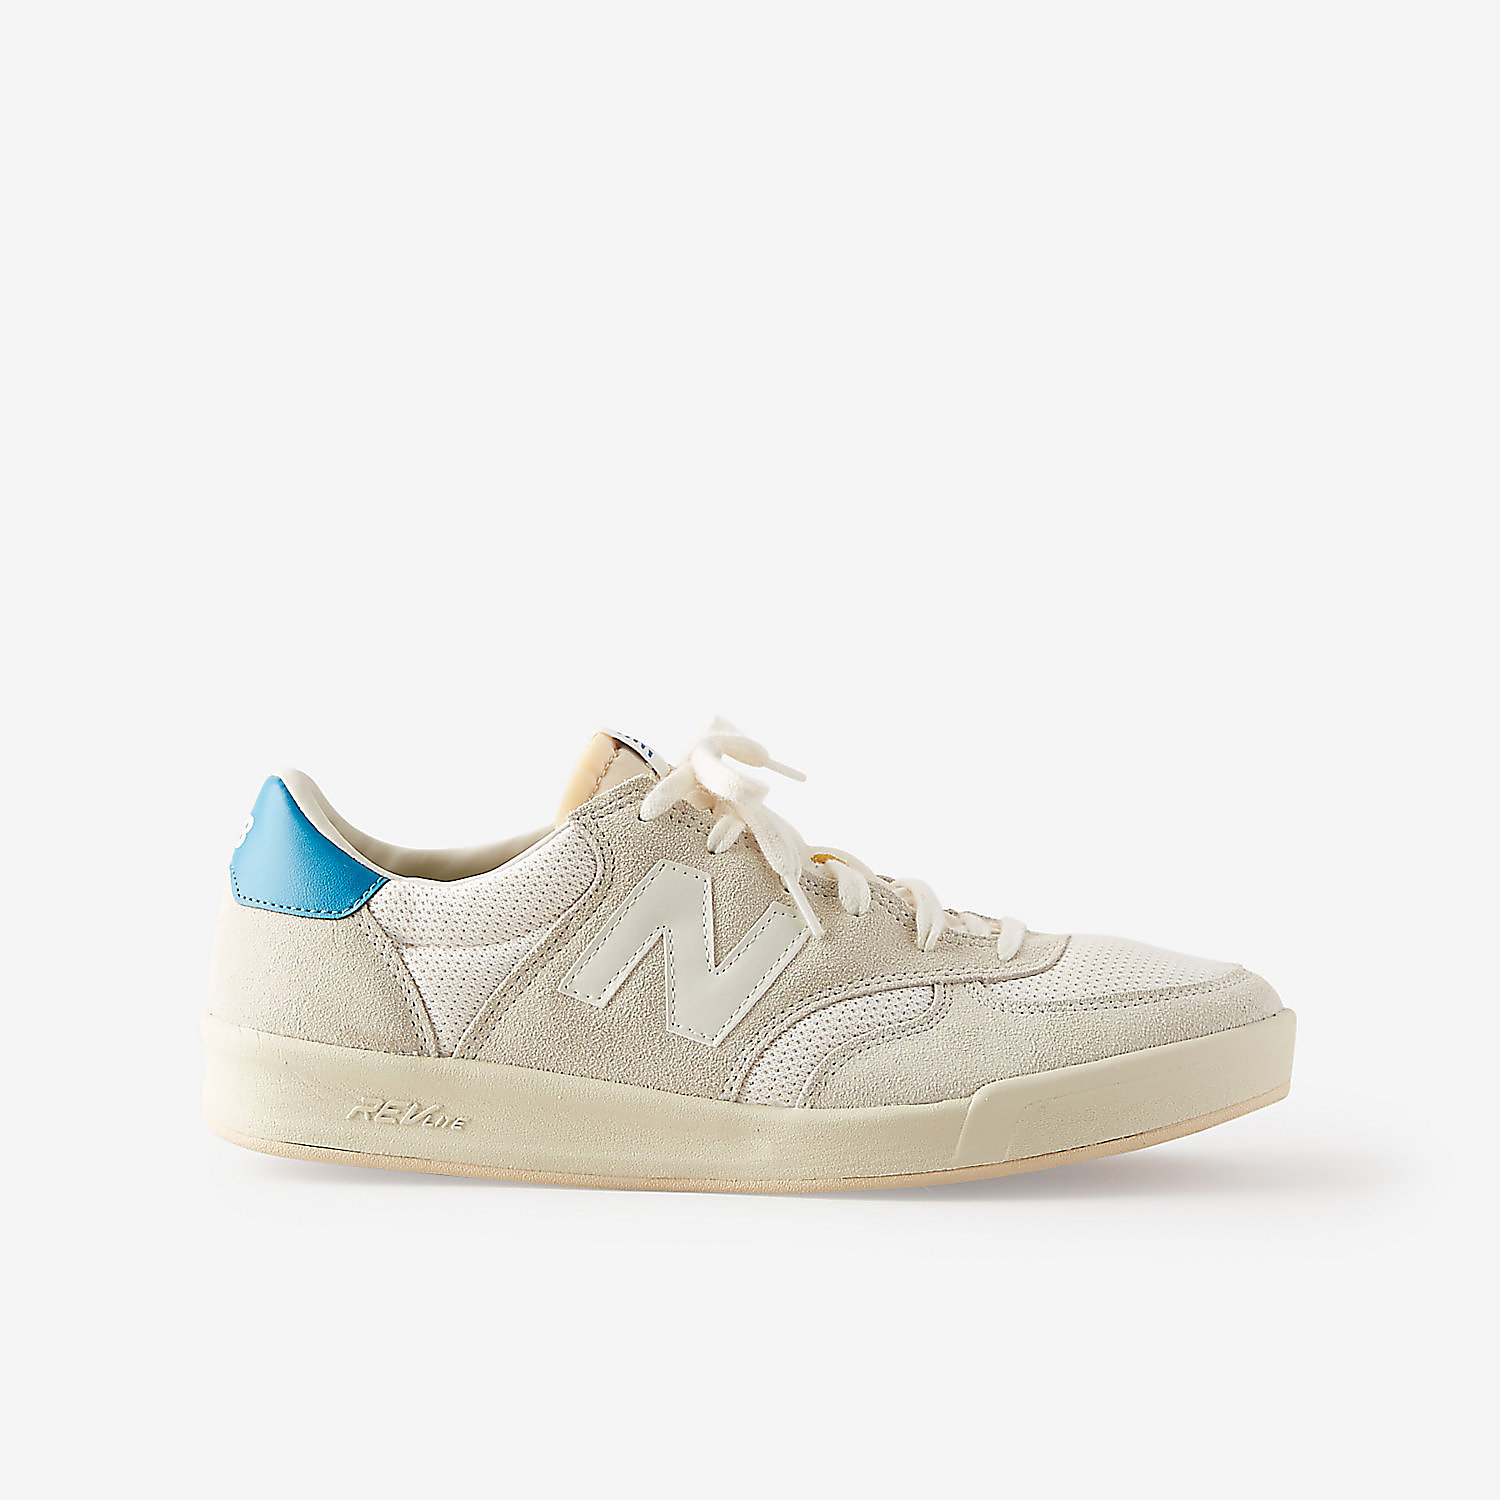 37a7dd11cc5b0 new balance court 300